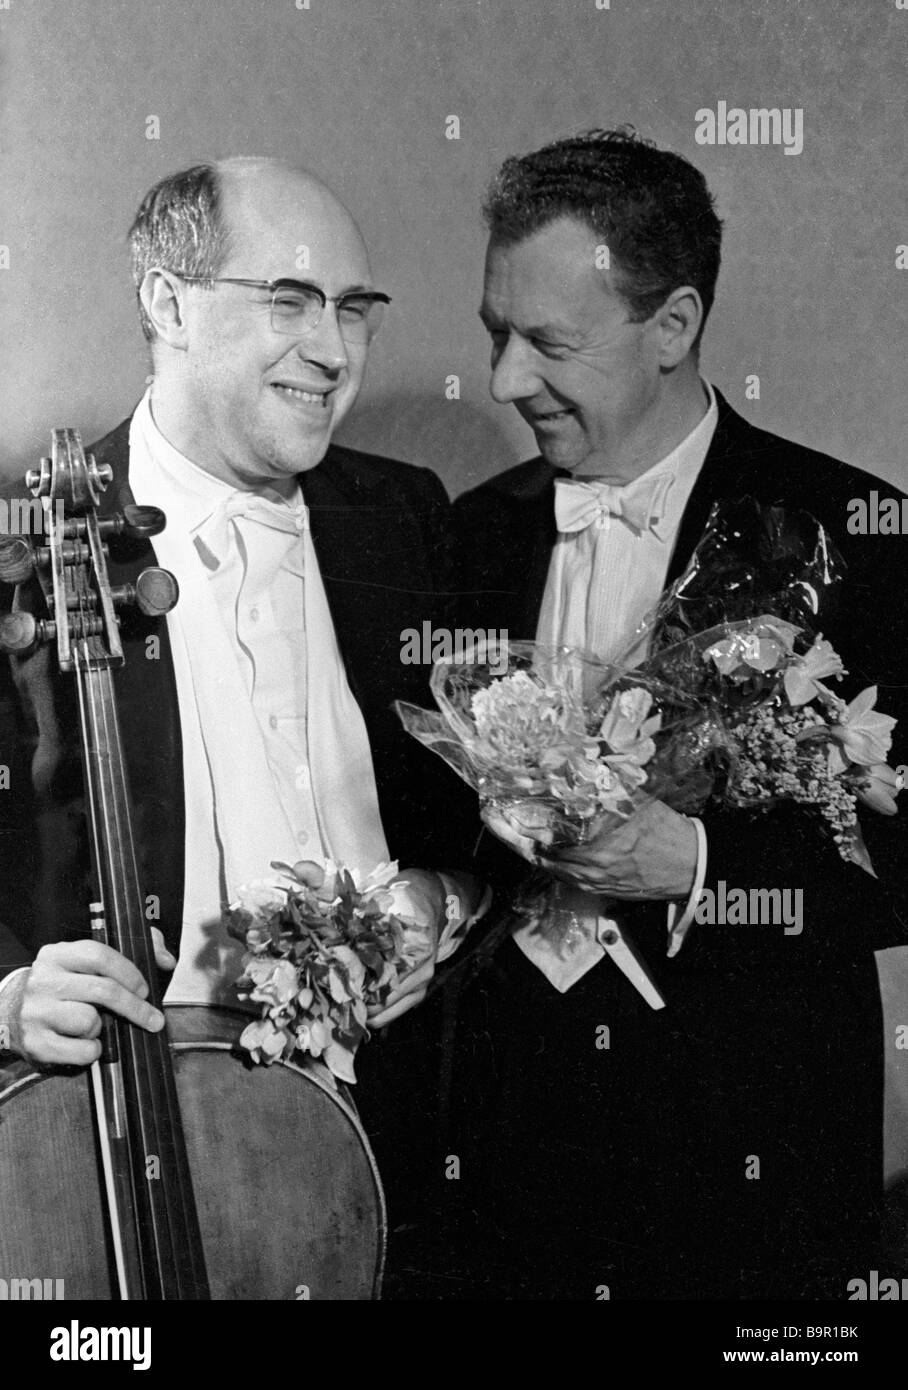 Mstislav Rostropovich and Benjamin Britten after a concert in the Big Hall of the Moscow Conservatory - Stock Image